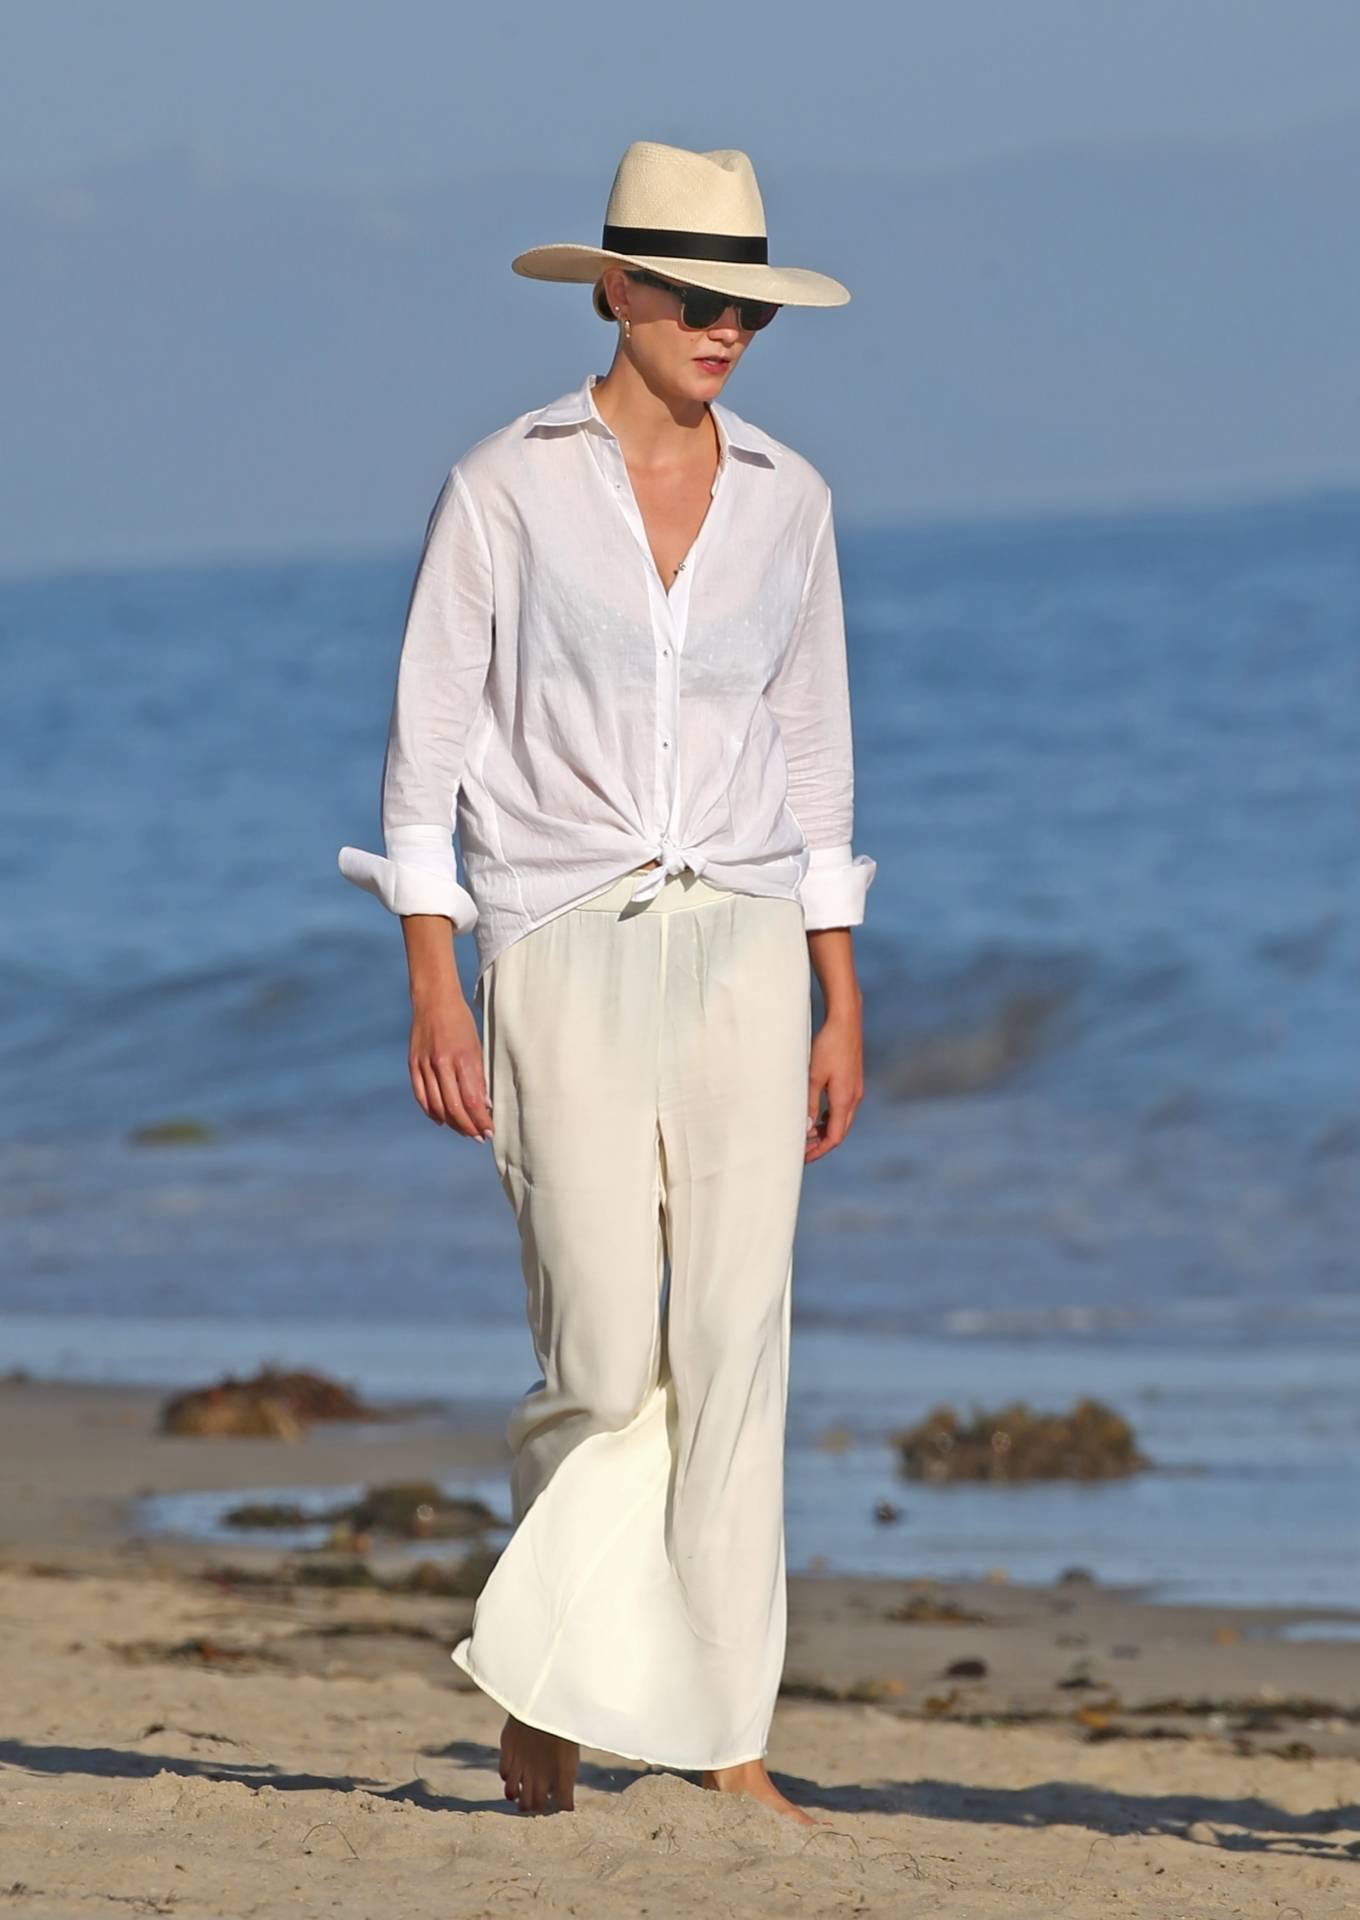 Karlie Kloss donning white straight fit trousers